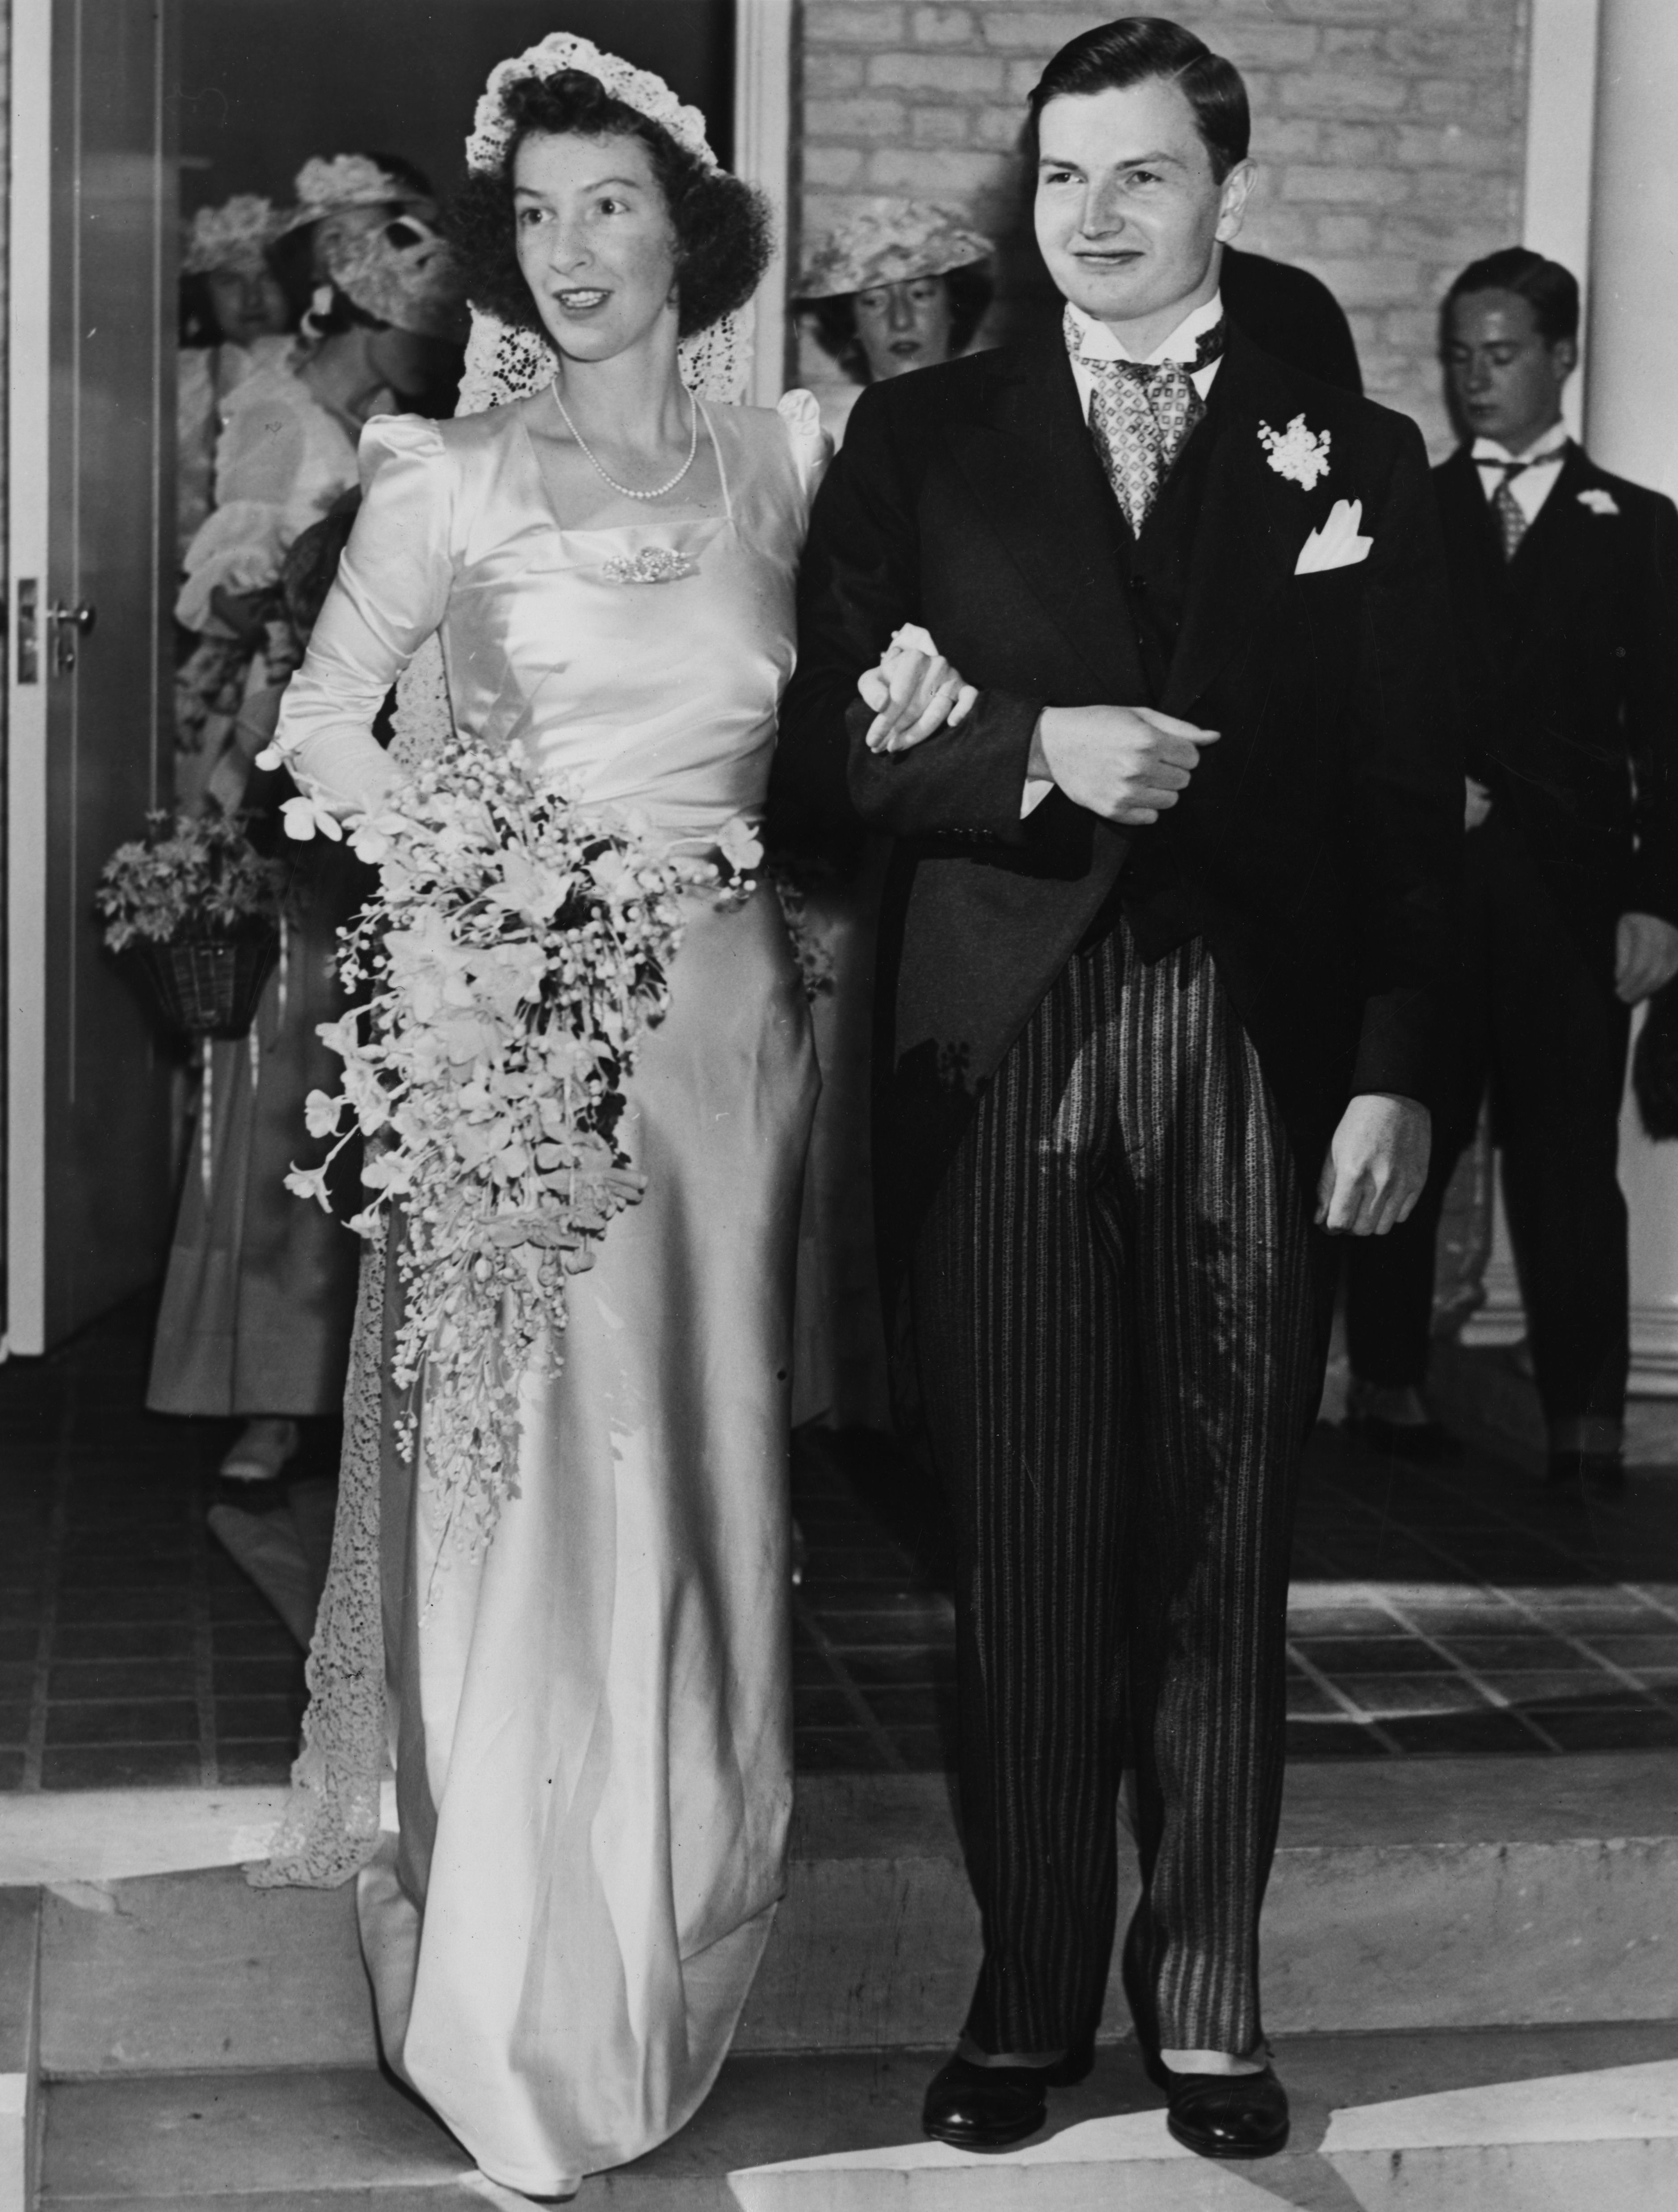 Margaret McGrath's Wedding Dress Almost ten years later in Bedford, NY, in 1940, his brother David Rockefeller (later the former chairman of the Chase Manhattan Bank and the Metropolitan Museum of Art) married Margaret McGrath and she wore a very similar gown—with slightly puffier sleeves. This, following a proposal made with a 5.6 carat rectangular step-cut diamond ring .